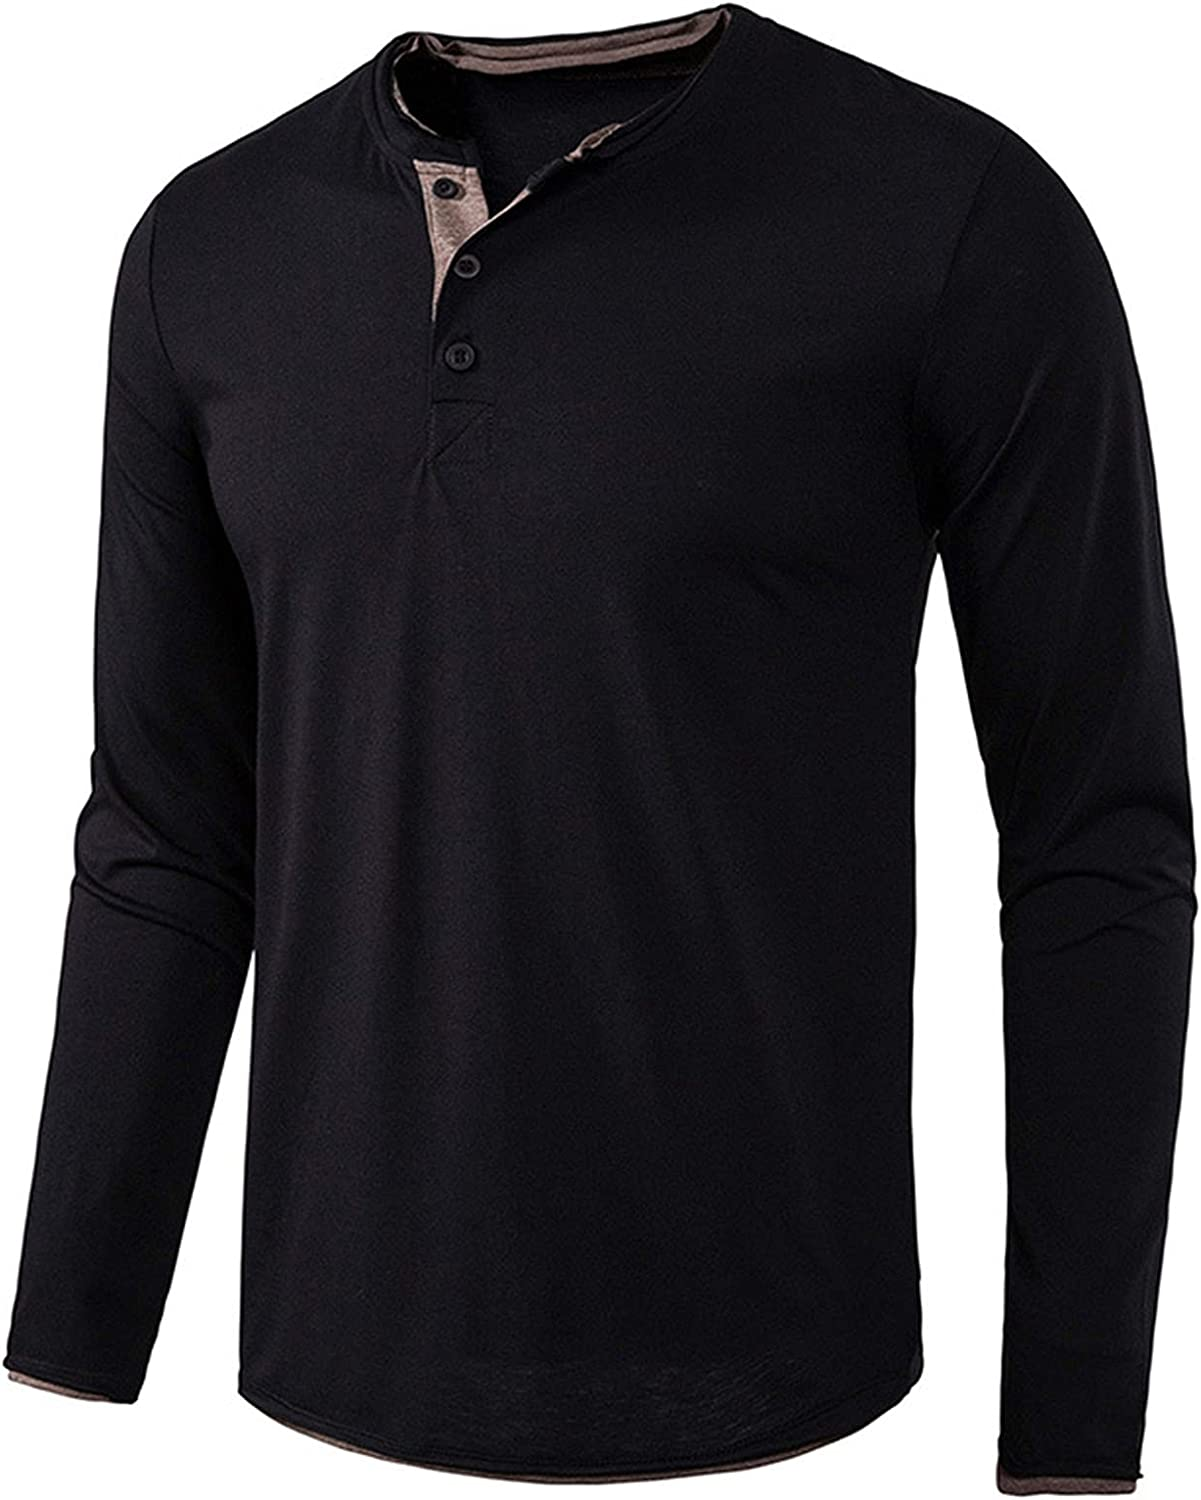 LIOMENGZI Men's Fashion Casual Front Placket Long Sleeve Henley T-Shirts Cotton Shirts Round Collar Pullover